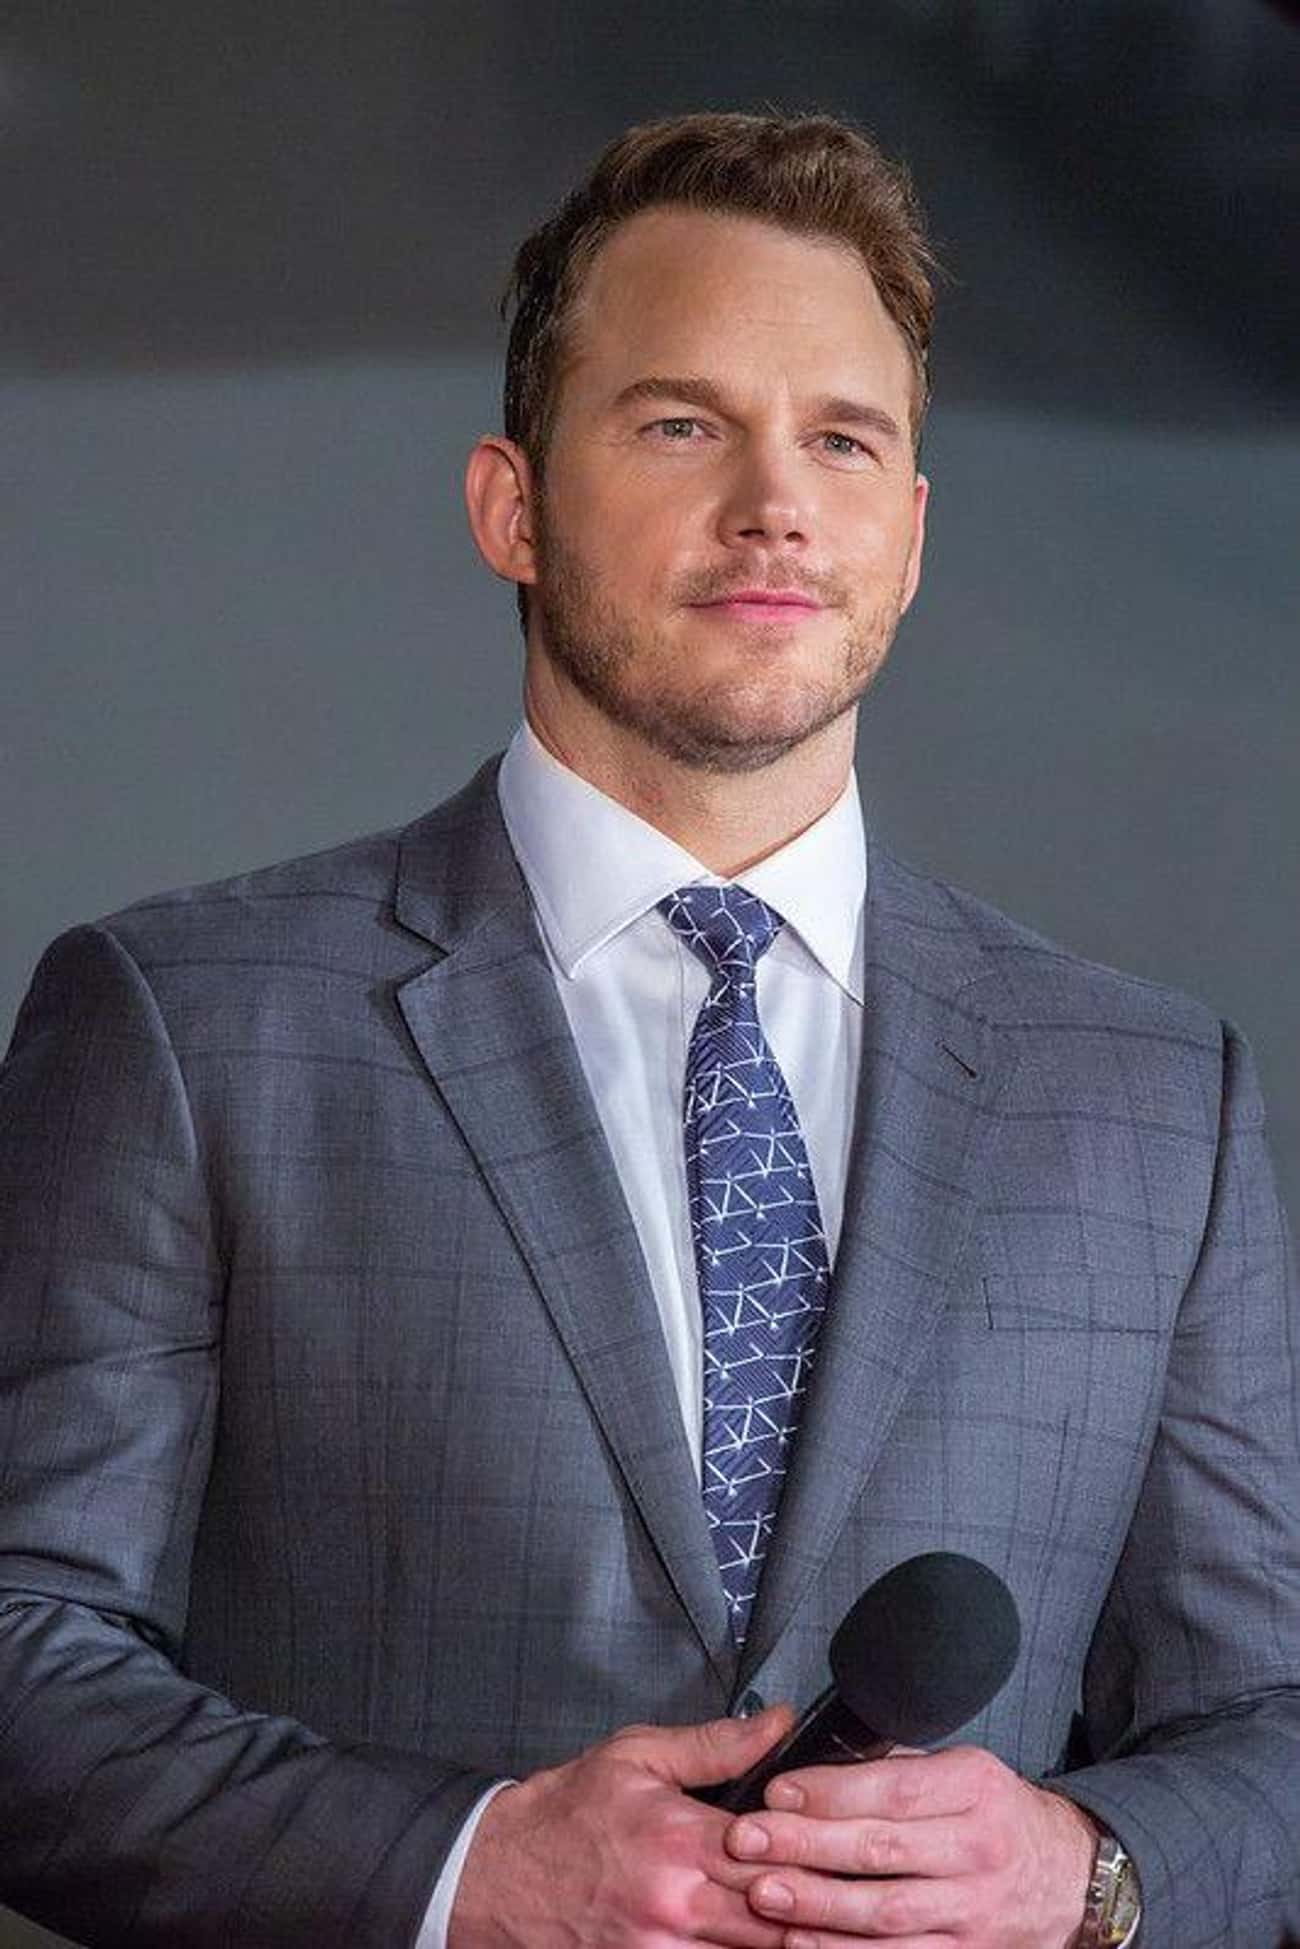 Chris Pratt Said Selfies Are J is listed (or ranked) 2 on the list Celebrities Who've Said Exactly What They Think About Strangers Asking For Selfies